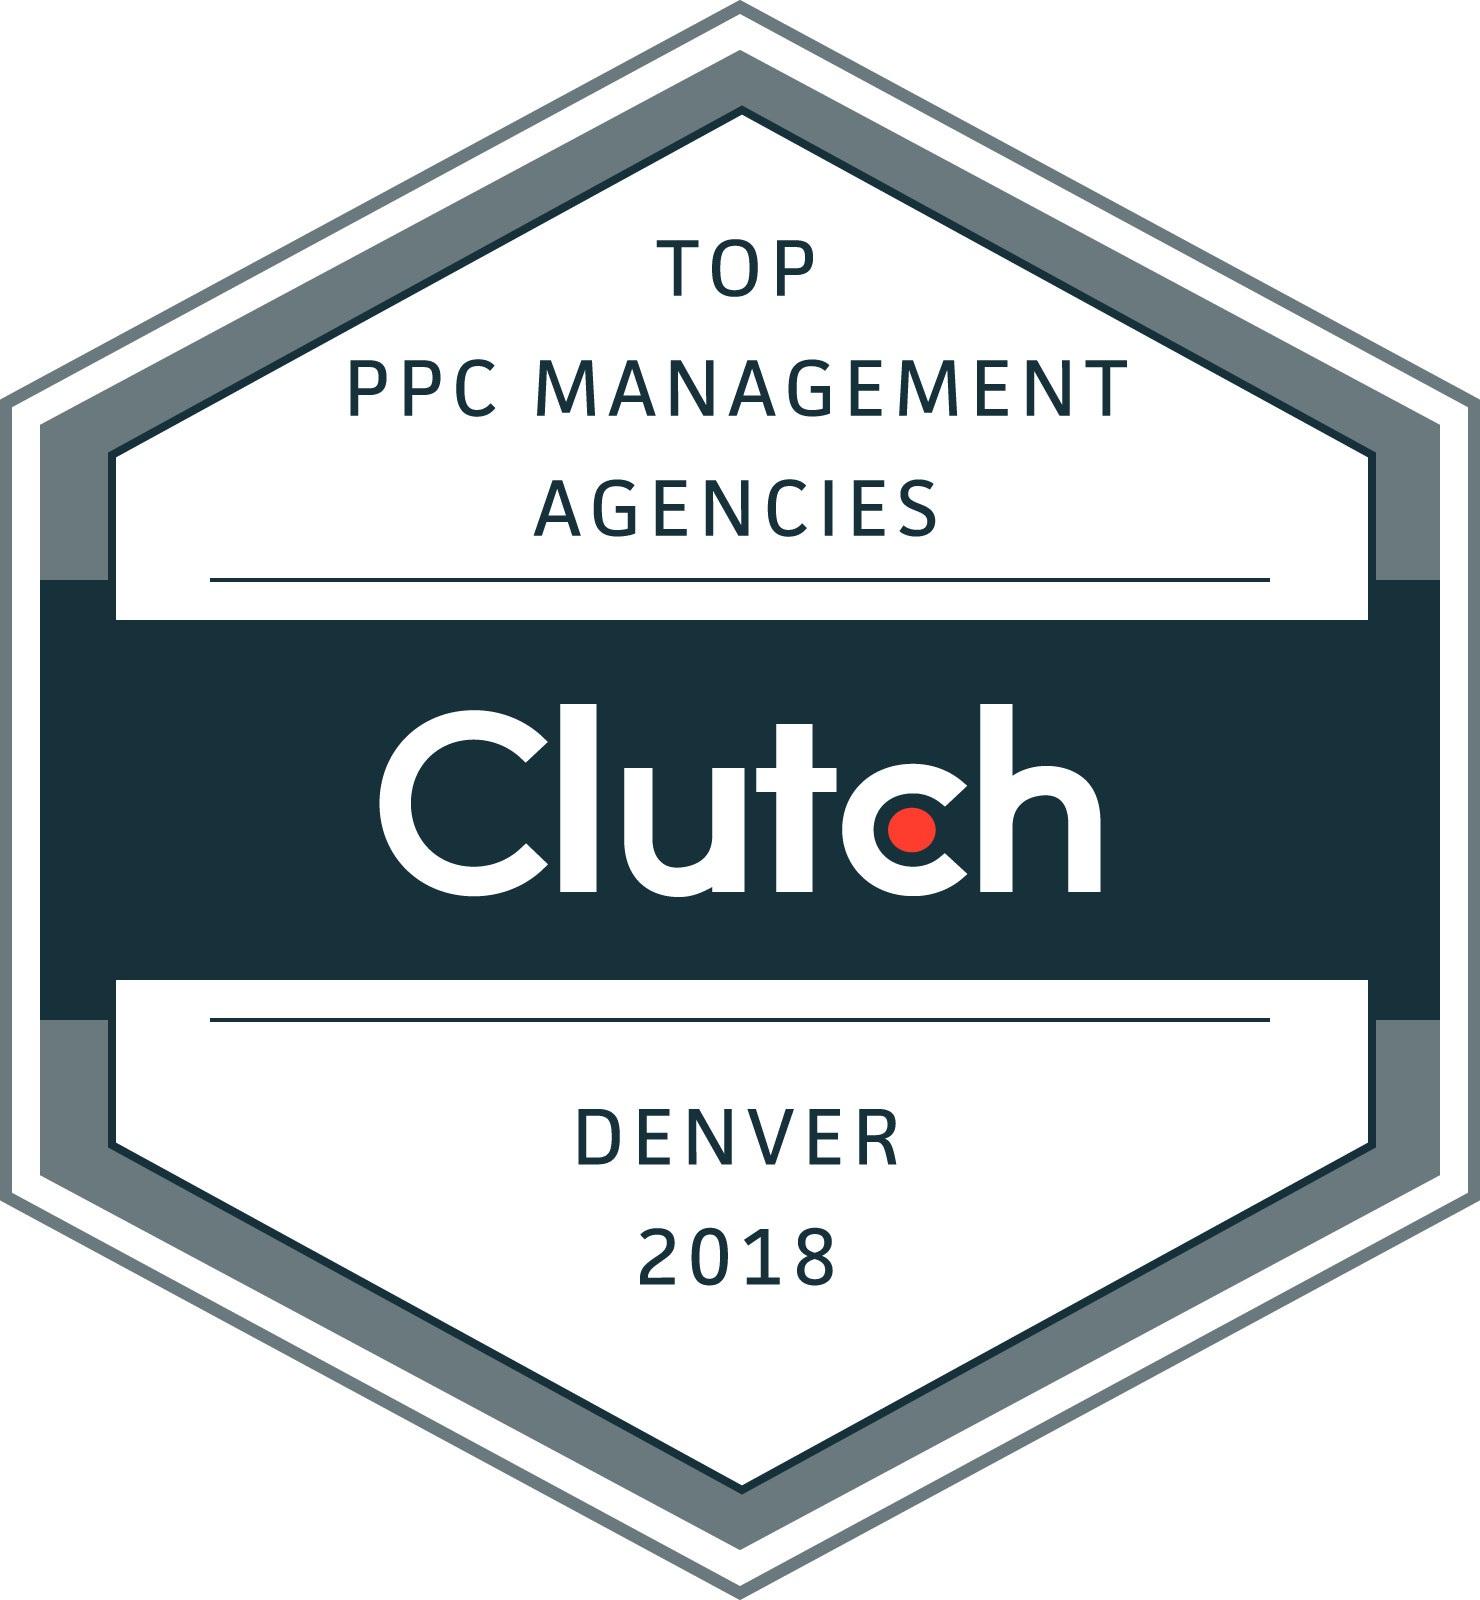 Clutch Top PPC Management Agencies 2018 Award